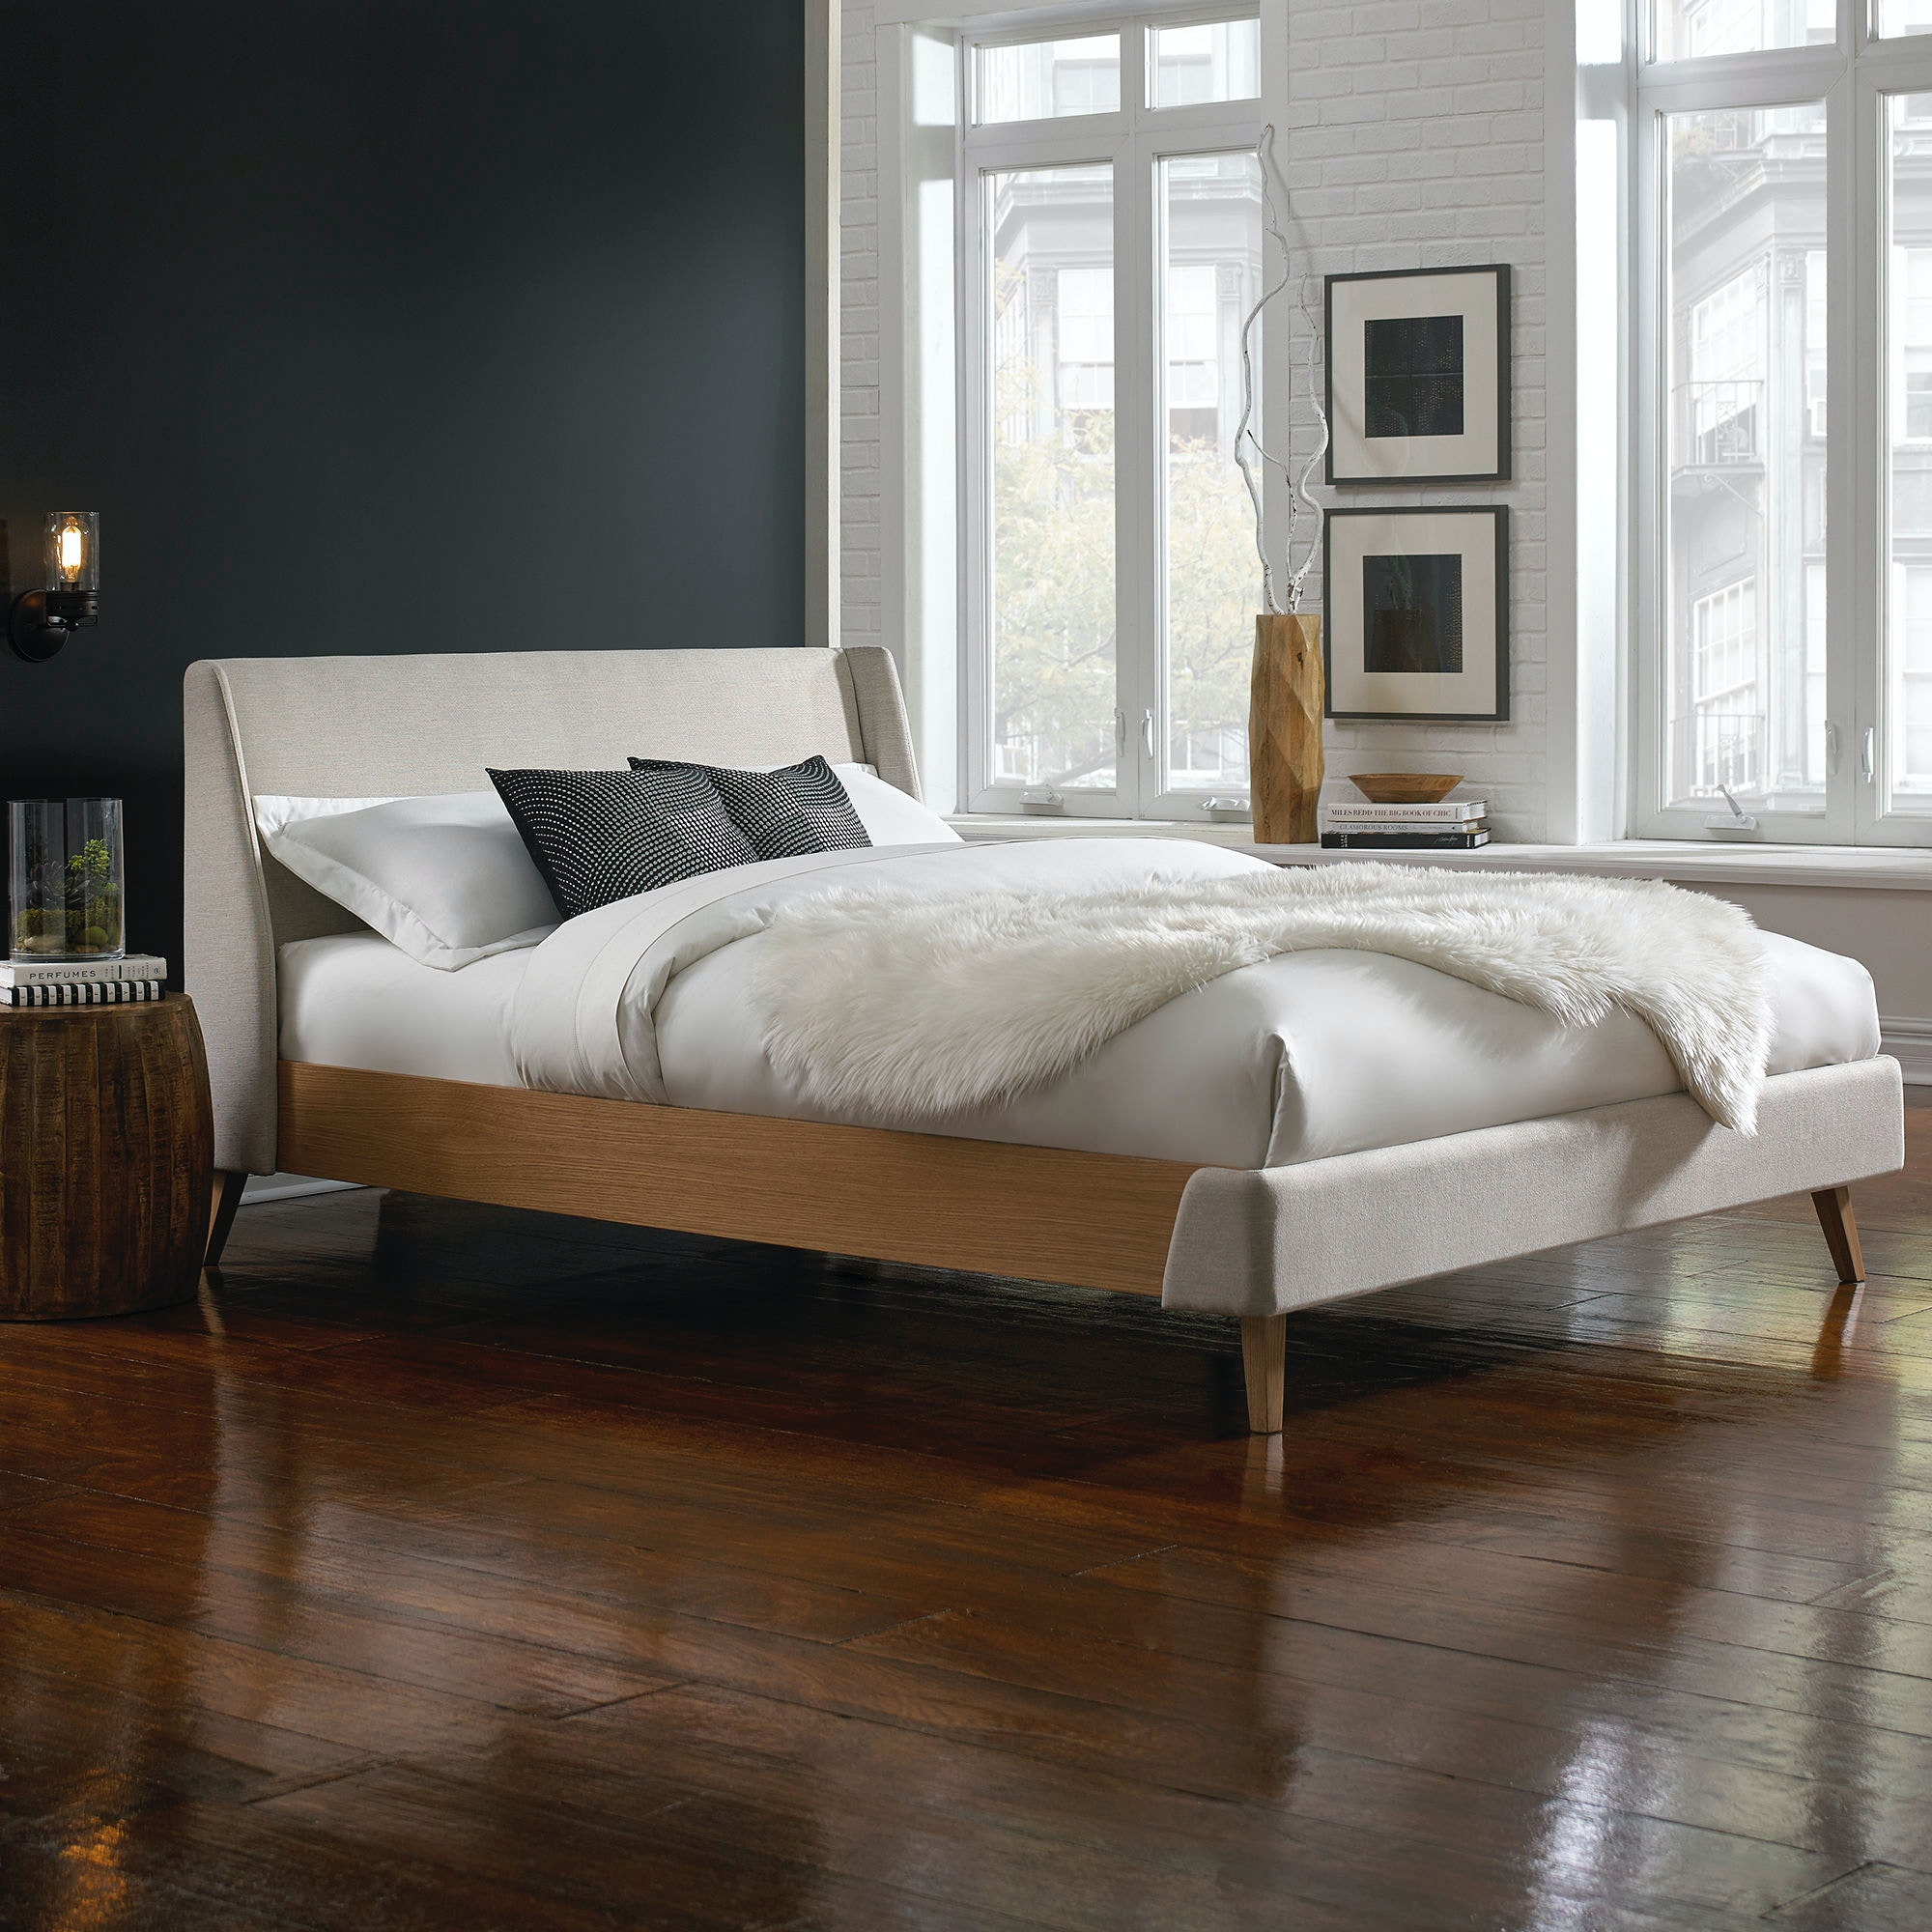 fashion bed group bedroom palmer complete platform bed with